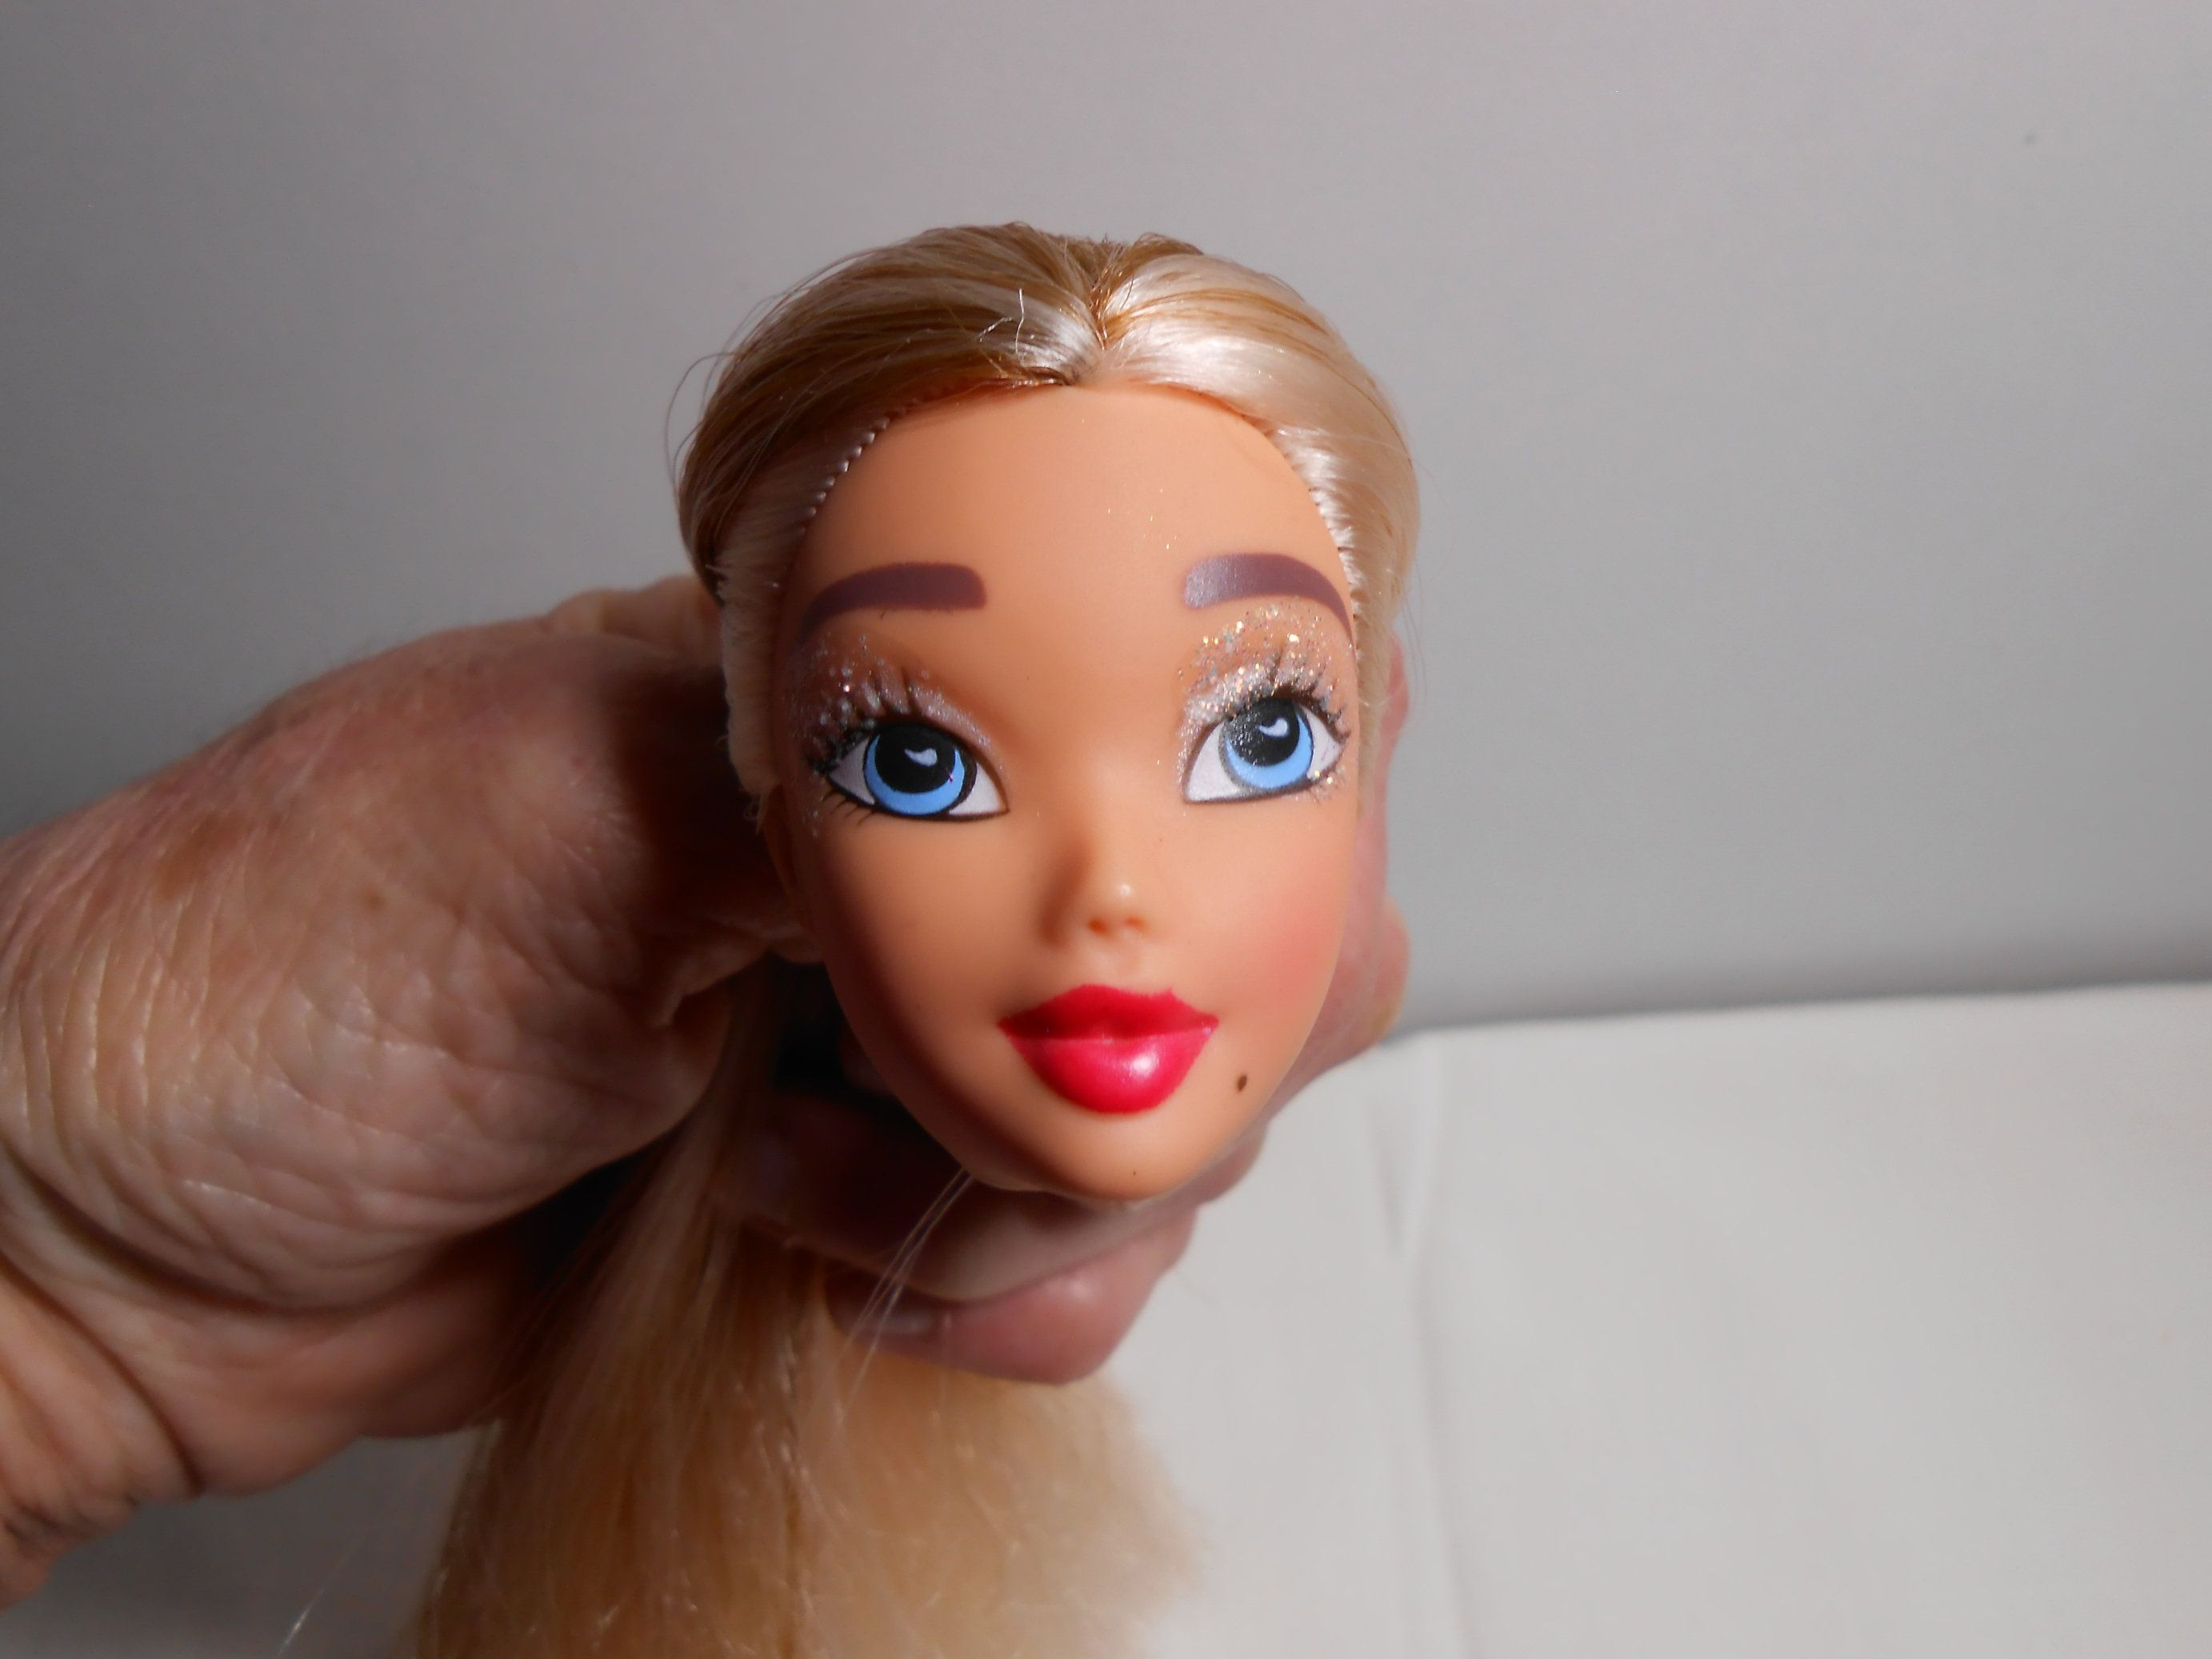 Photo of CLONE head My scenes Barbie without brand, Doll parts …